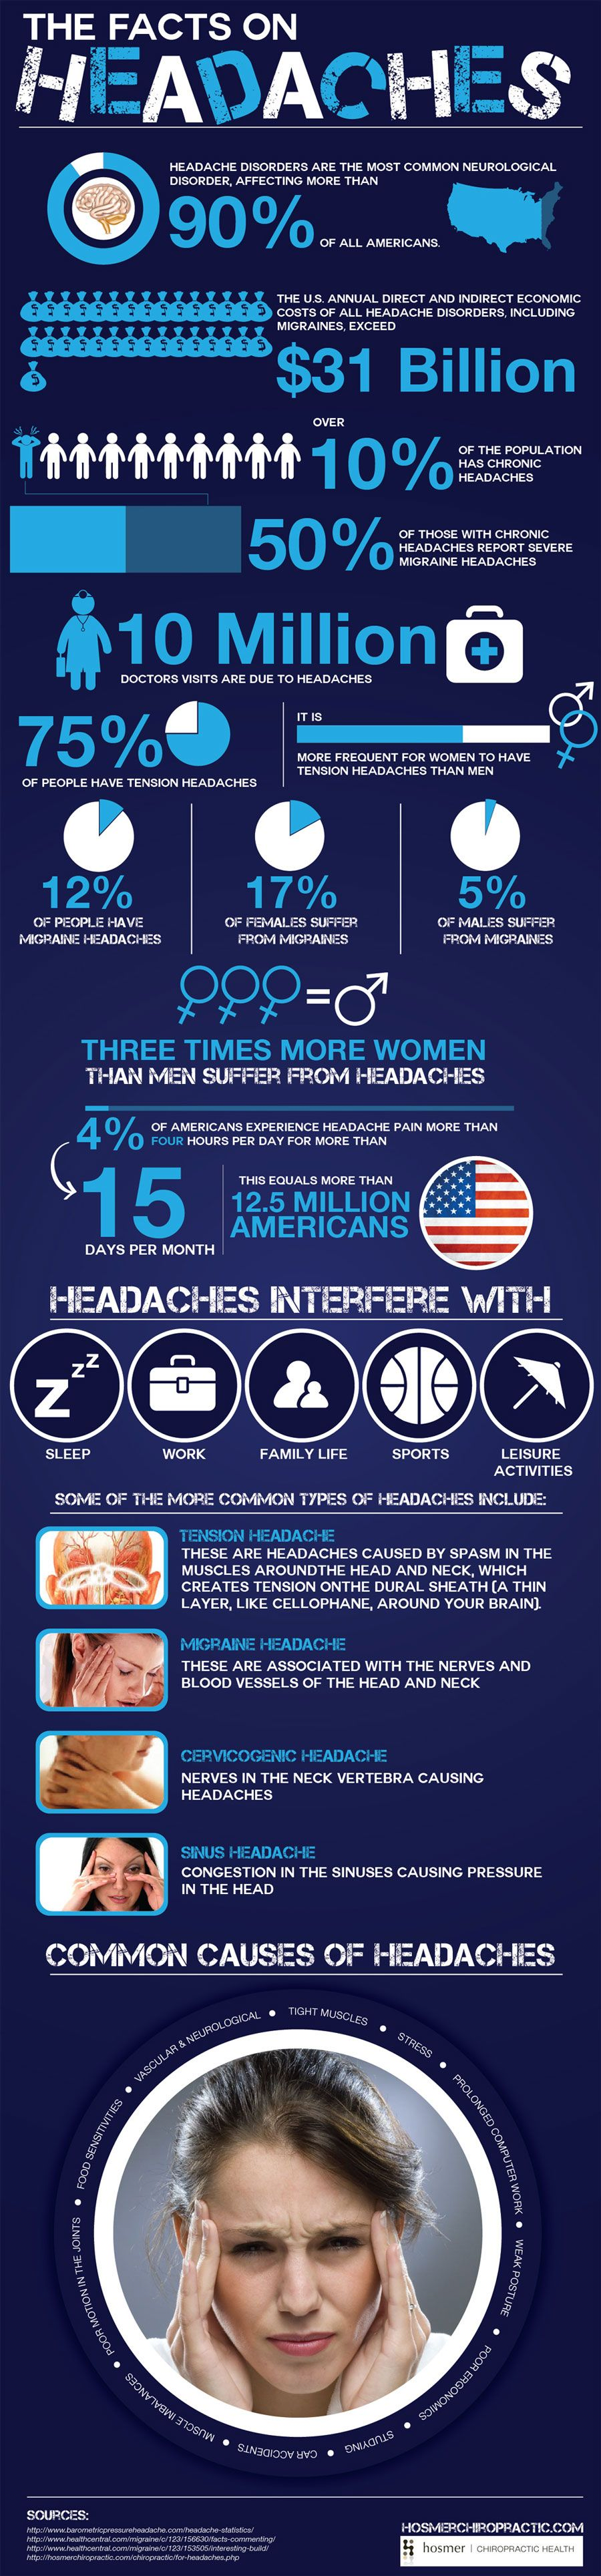 The Facts on Headaches     Behavioral chronic migraine therapy like